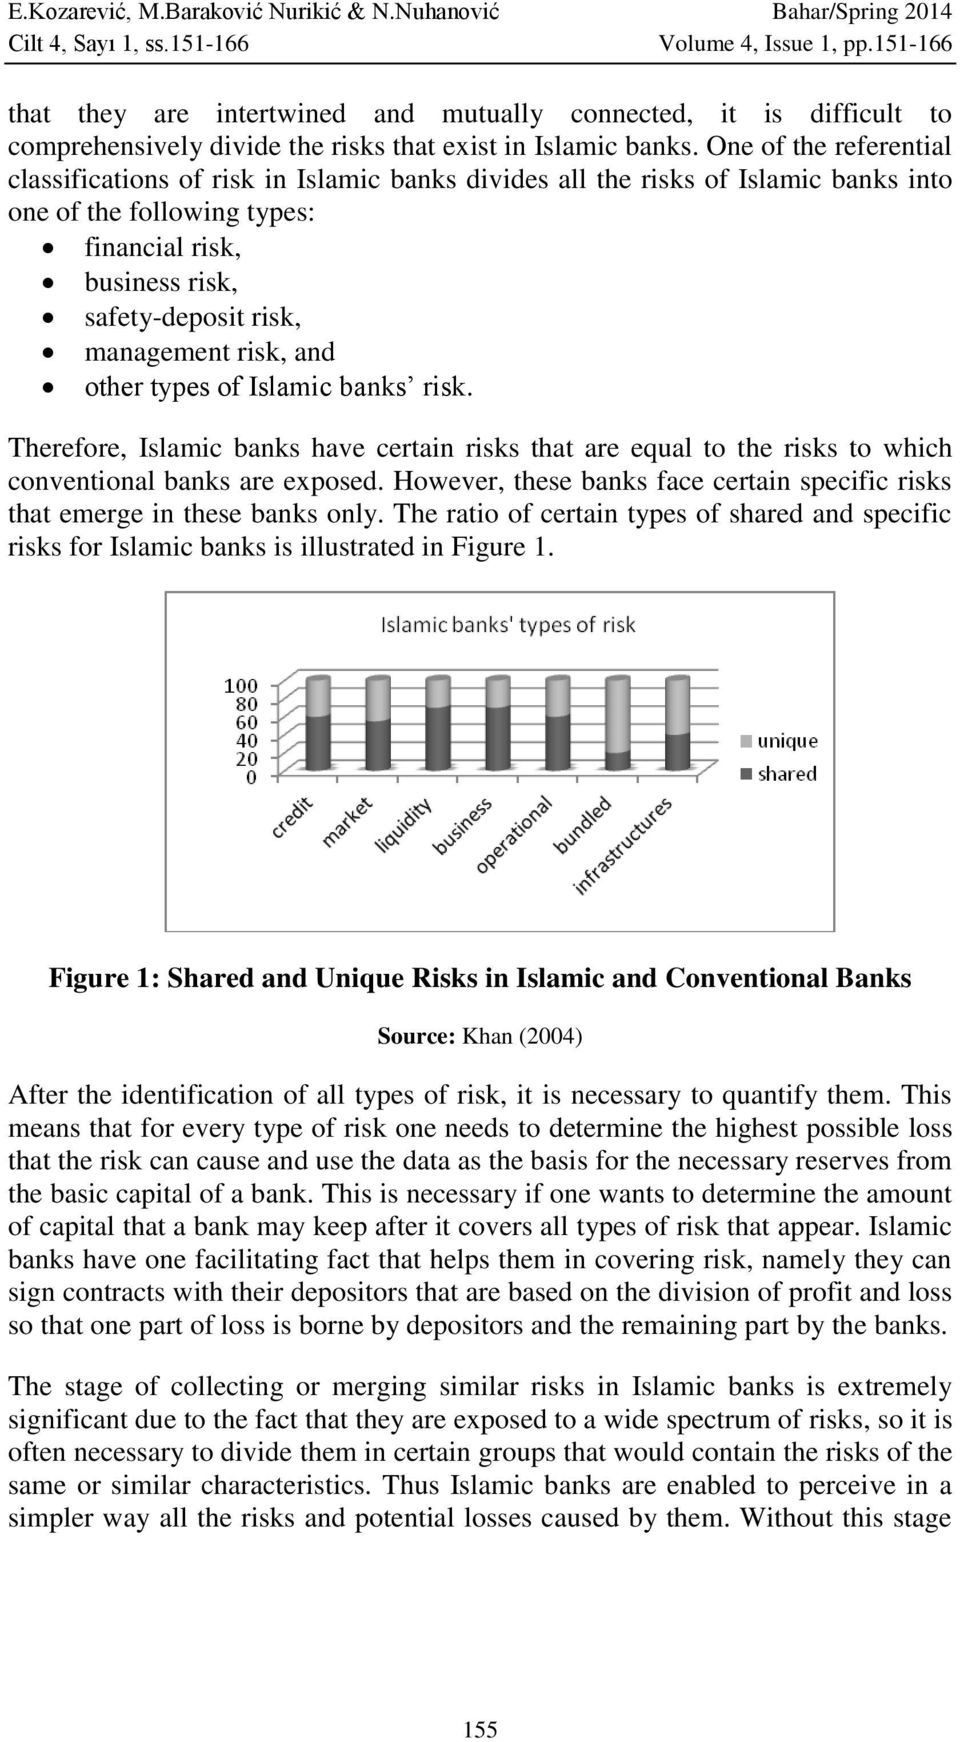 One of the referential classifications of risk in Islamic banks divides all the risks of Islamic banks into one of the following types: financial risk, business risk, safety-deposit risk, management